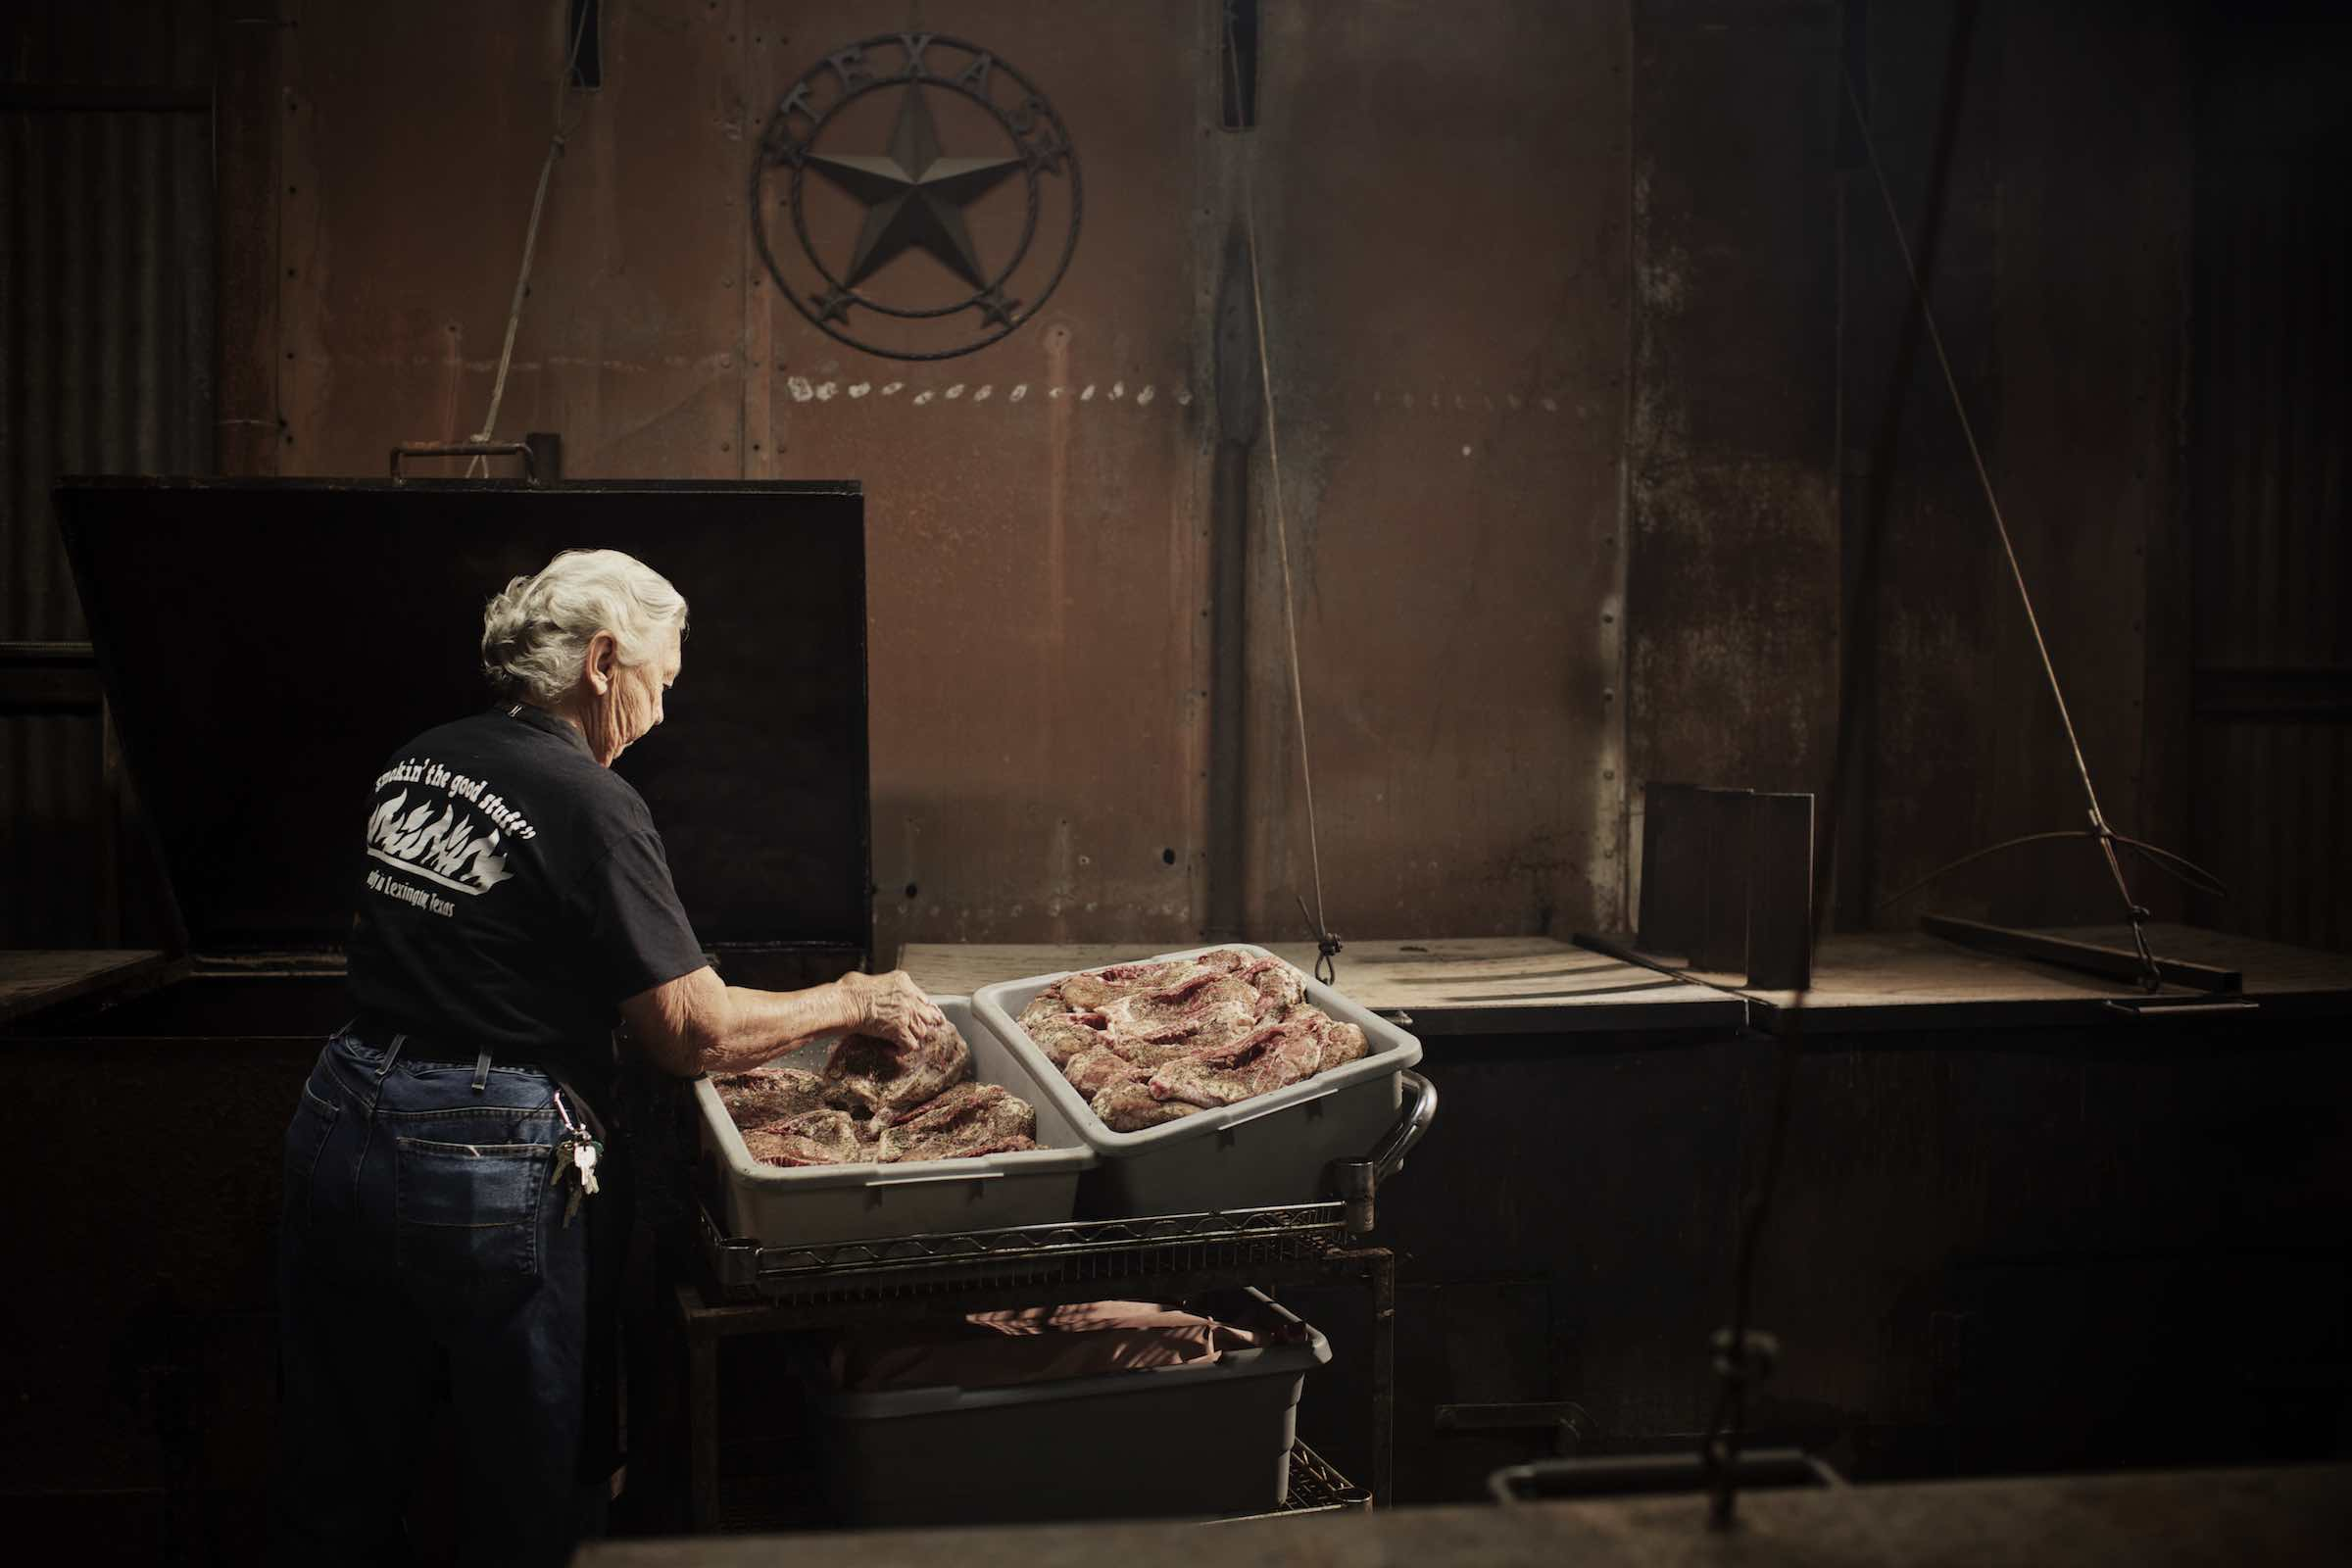 Pit master handling large cuts of seasoned meat in beige tubs.